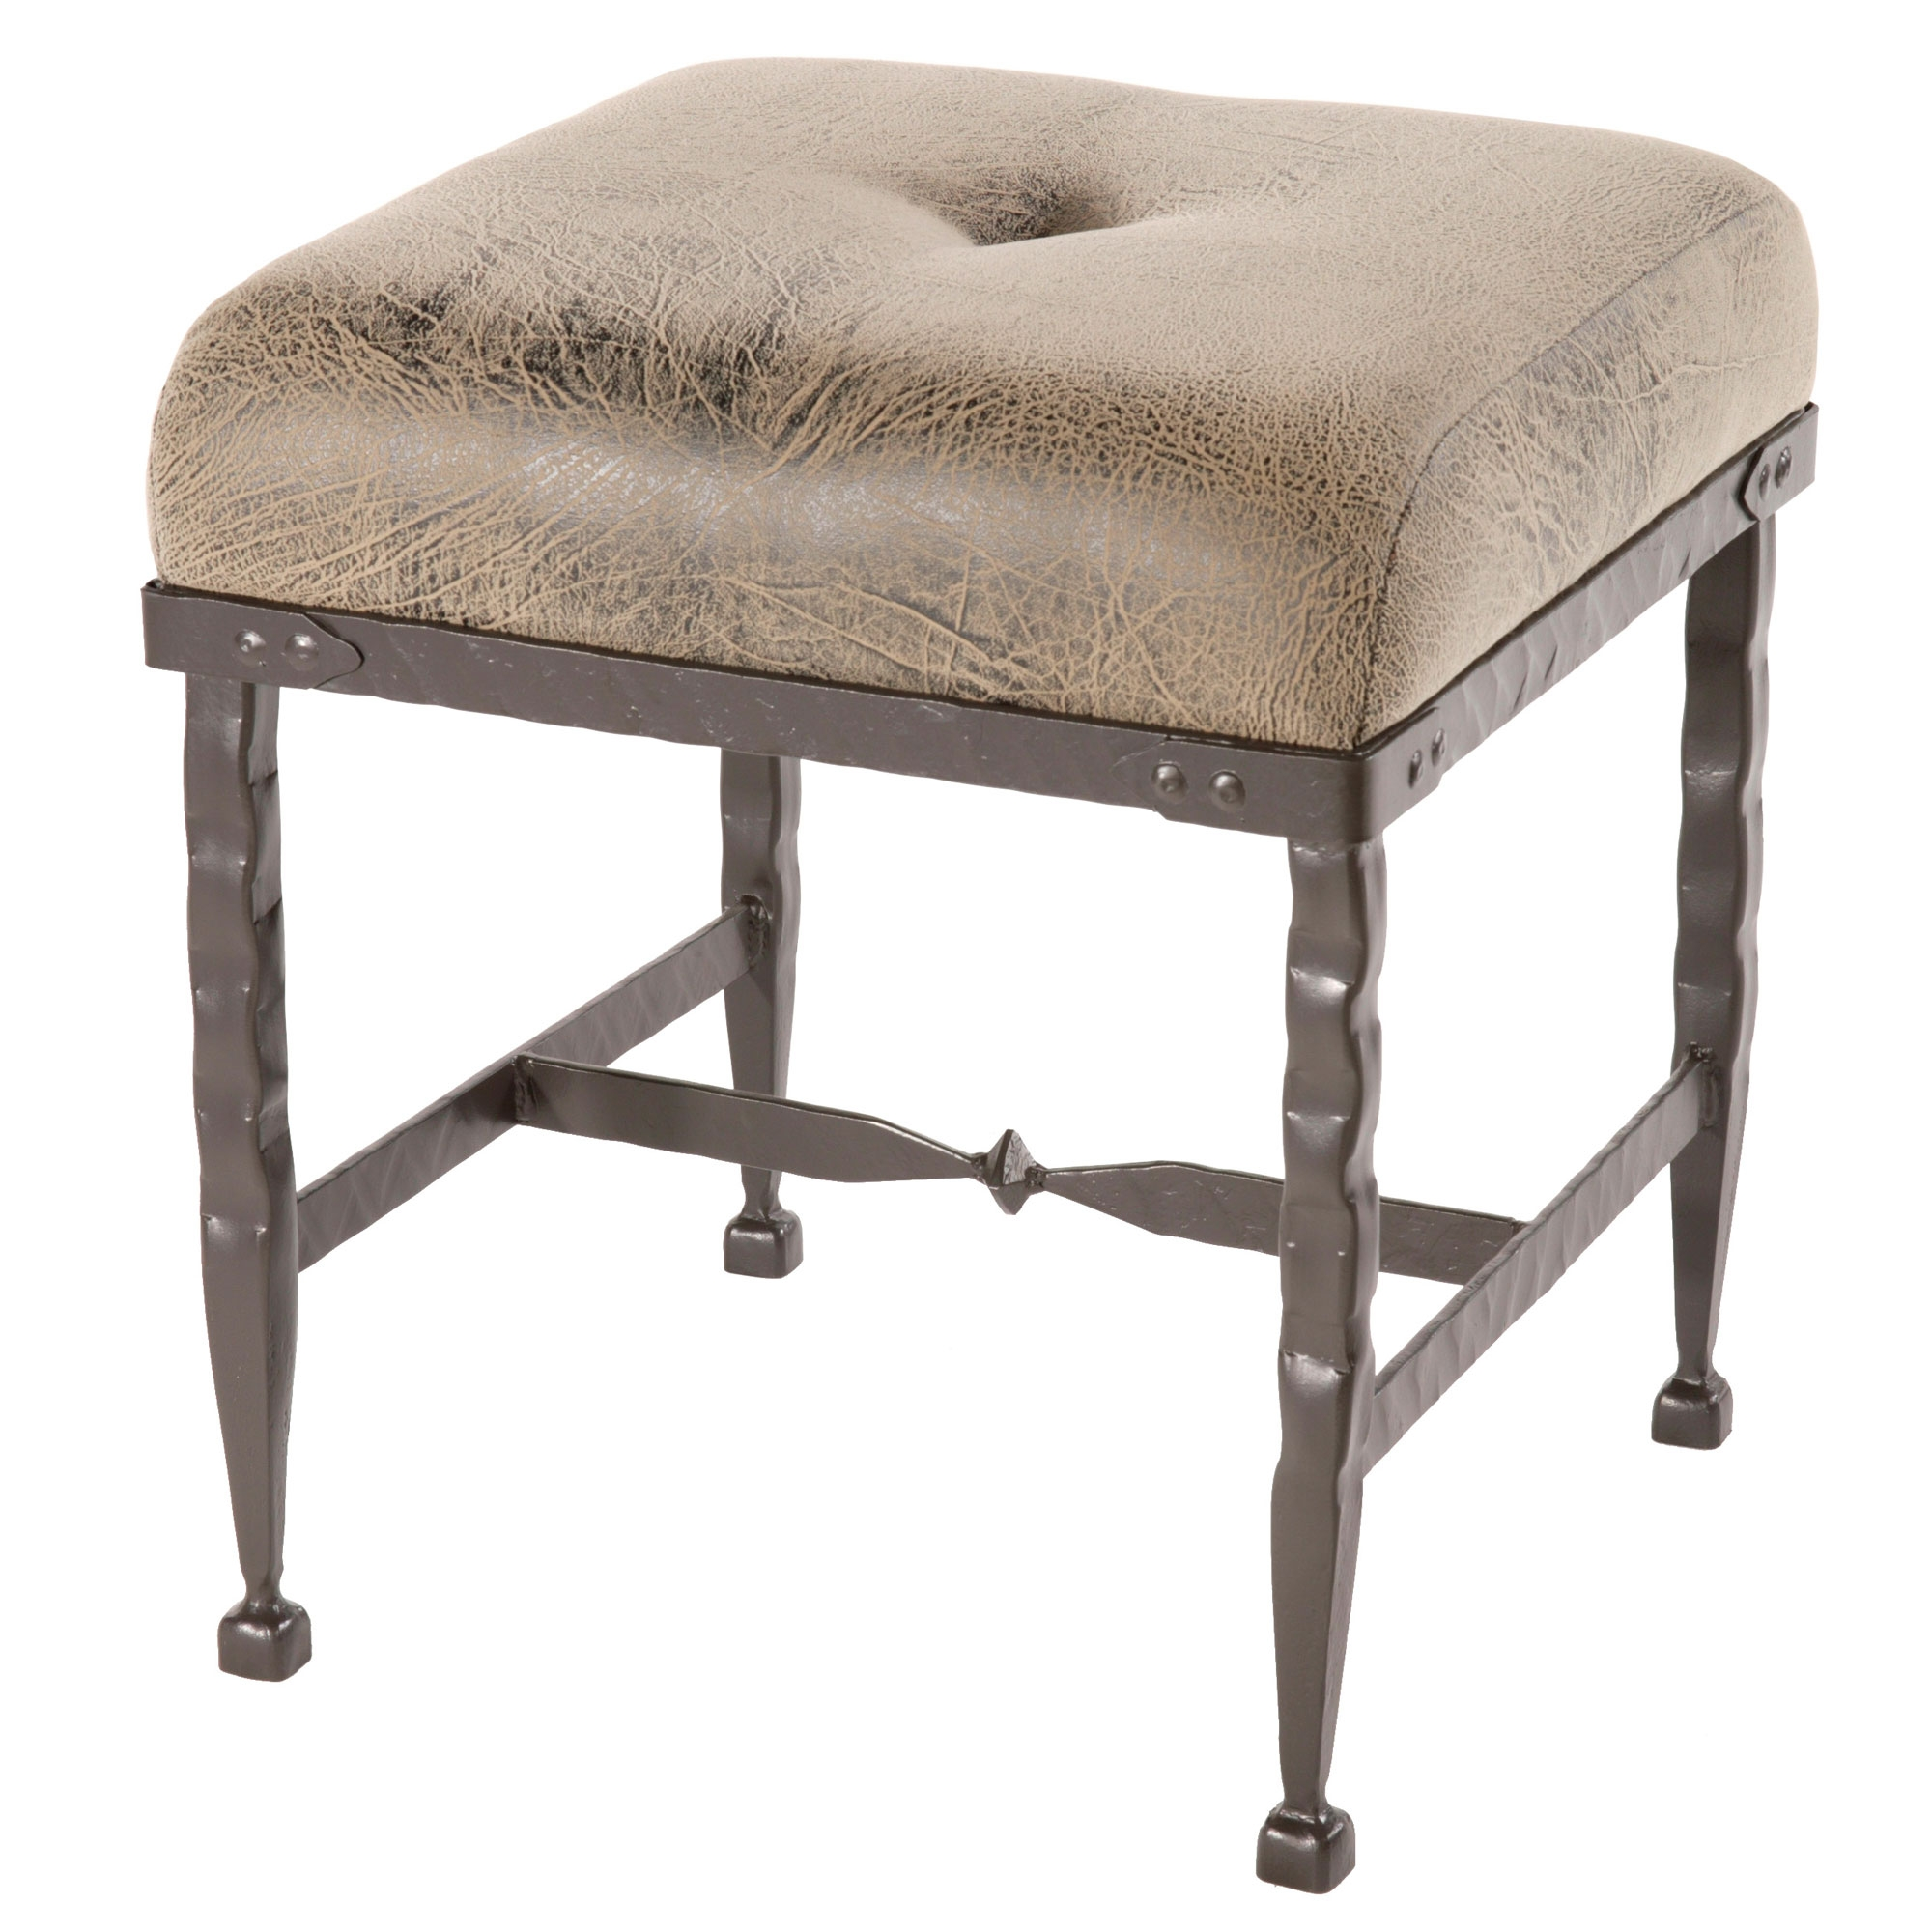 Wrought Iron Forest Hill Collection Foot Stool